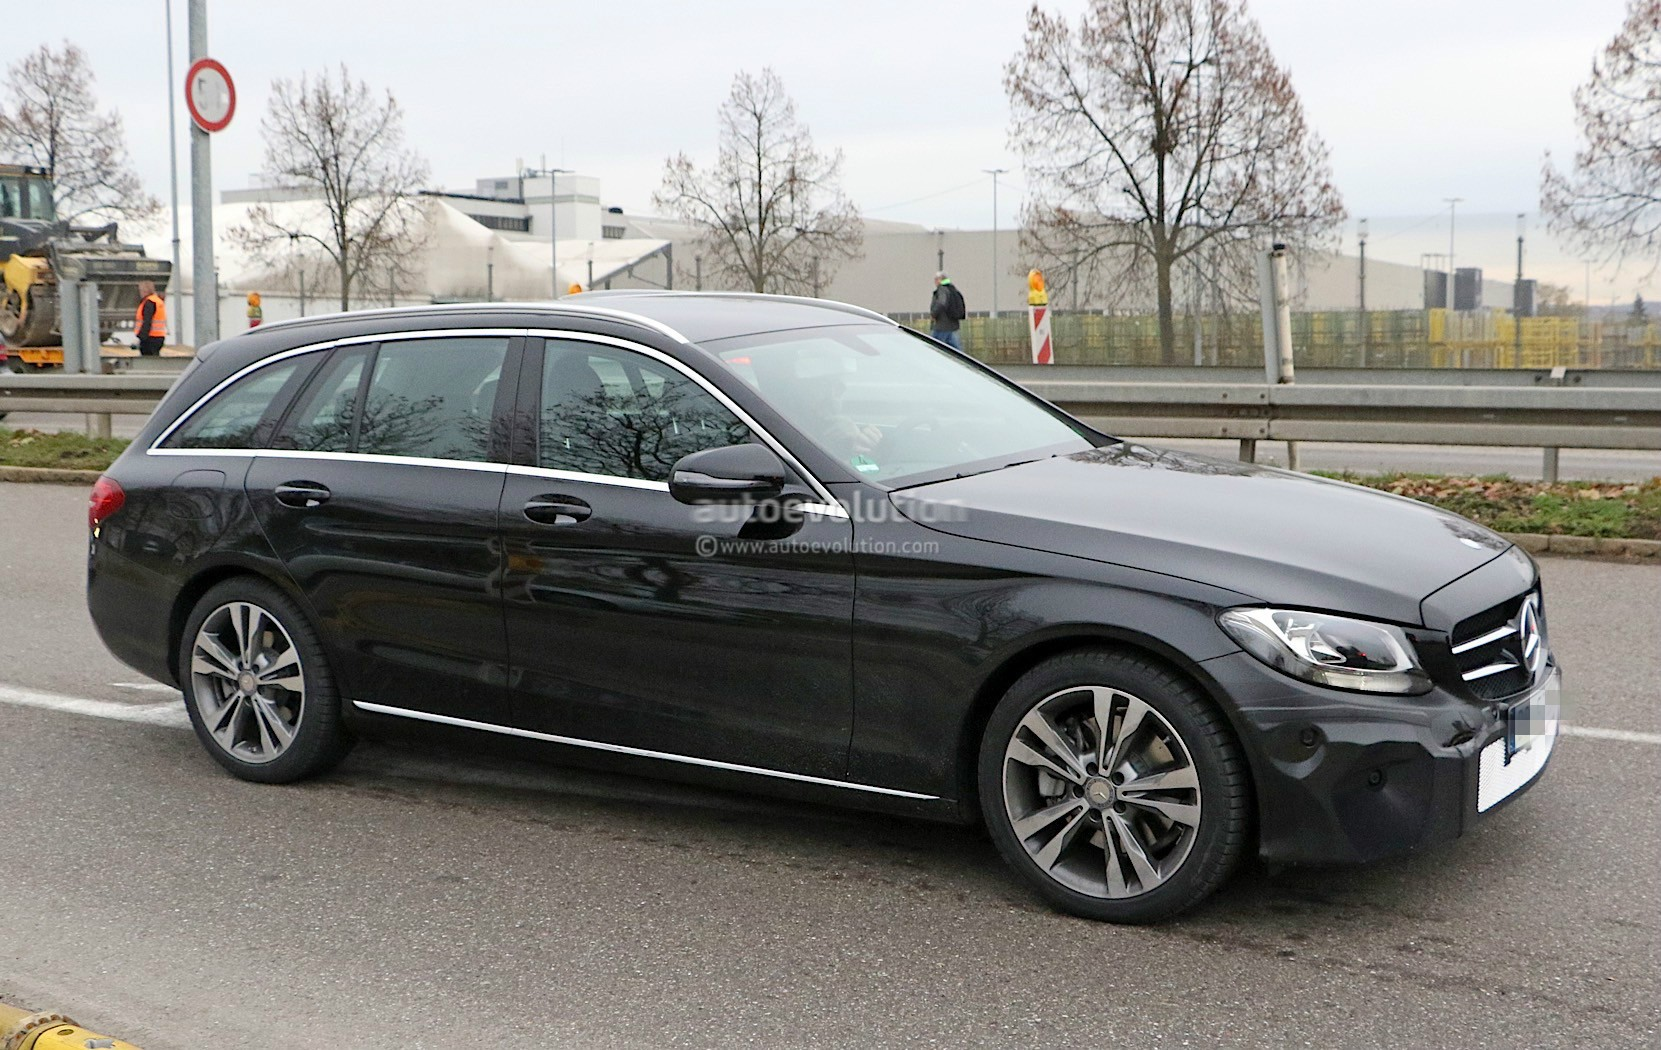 2018 mercedes benz c class facelift shows interior for the first time autoevolution